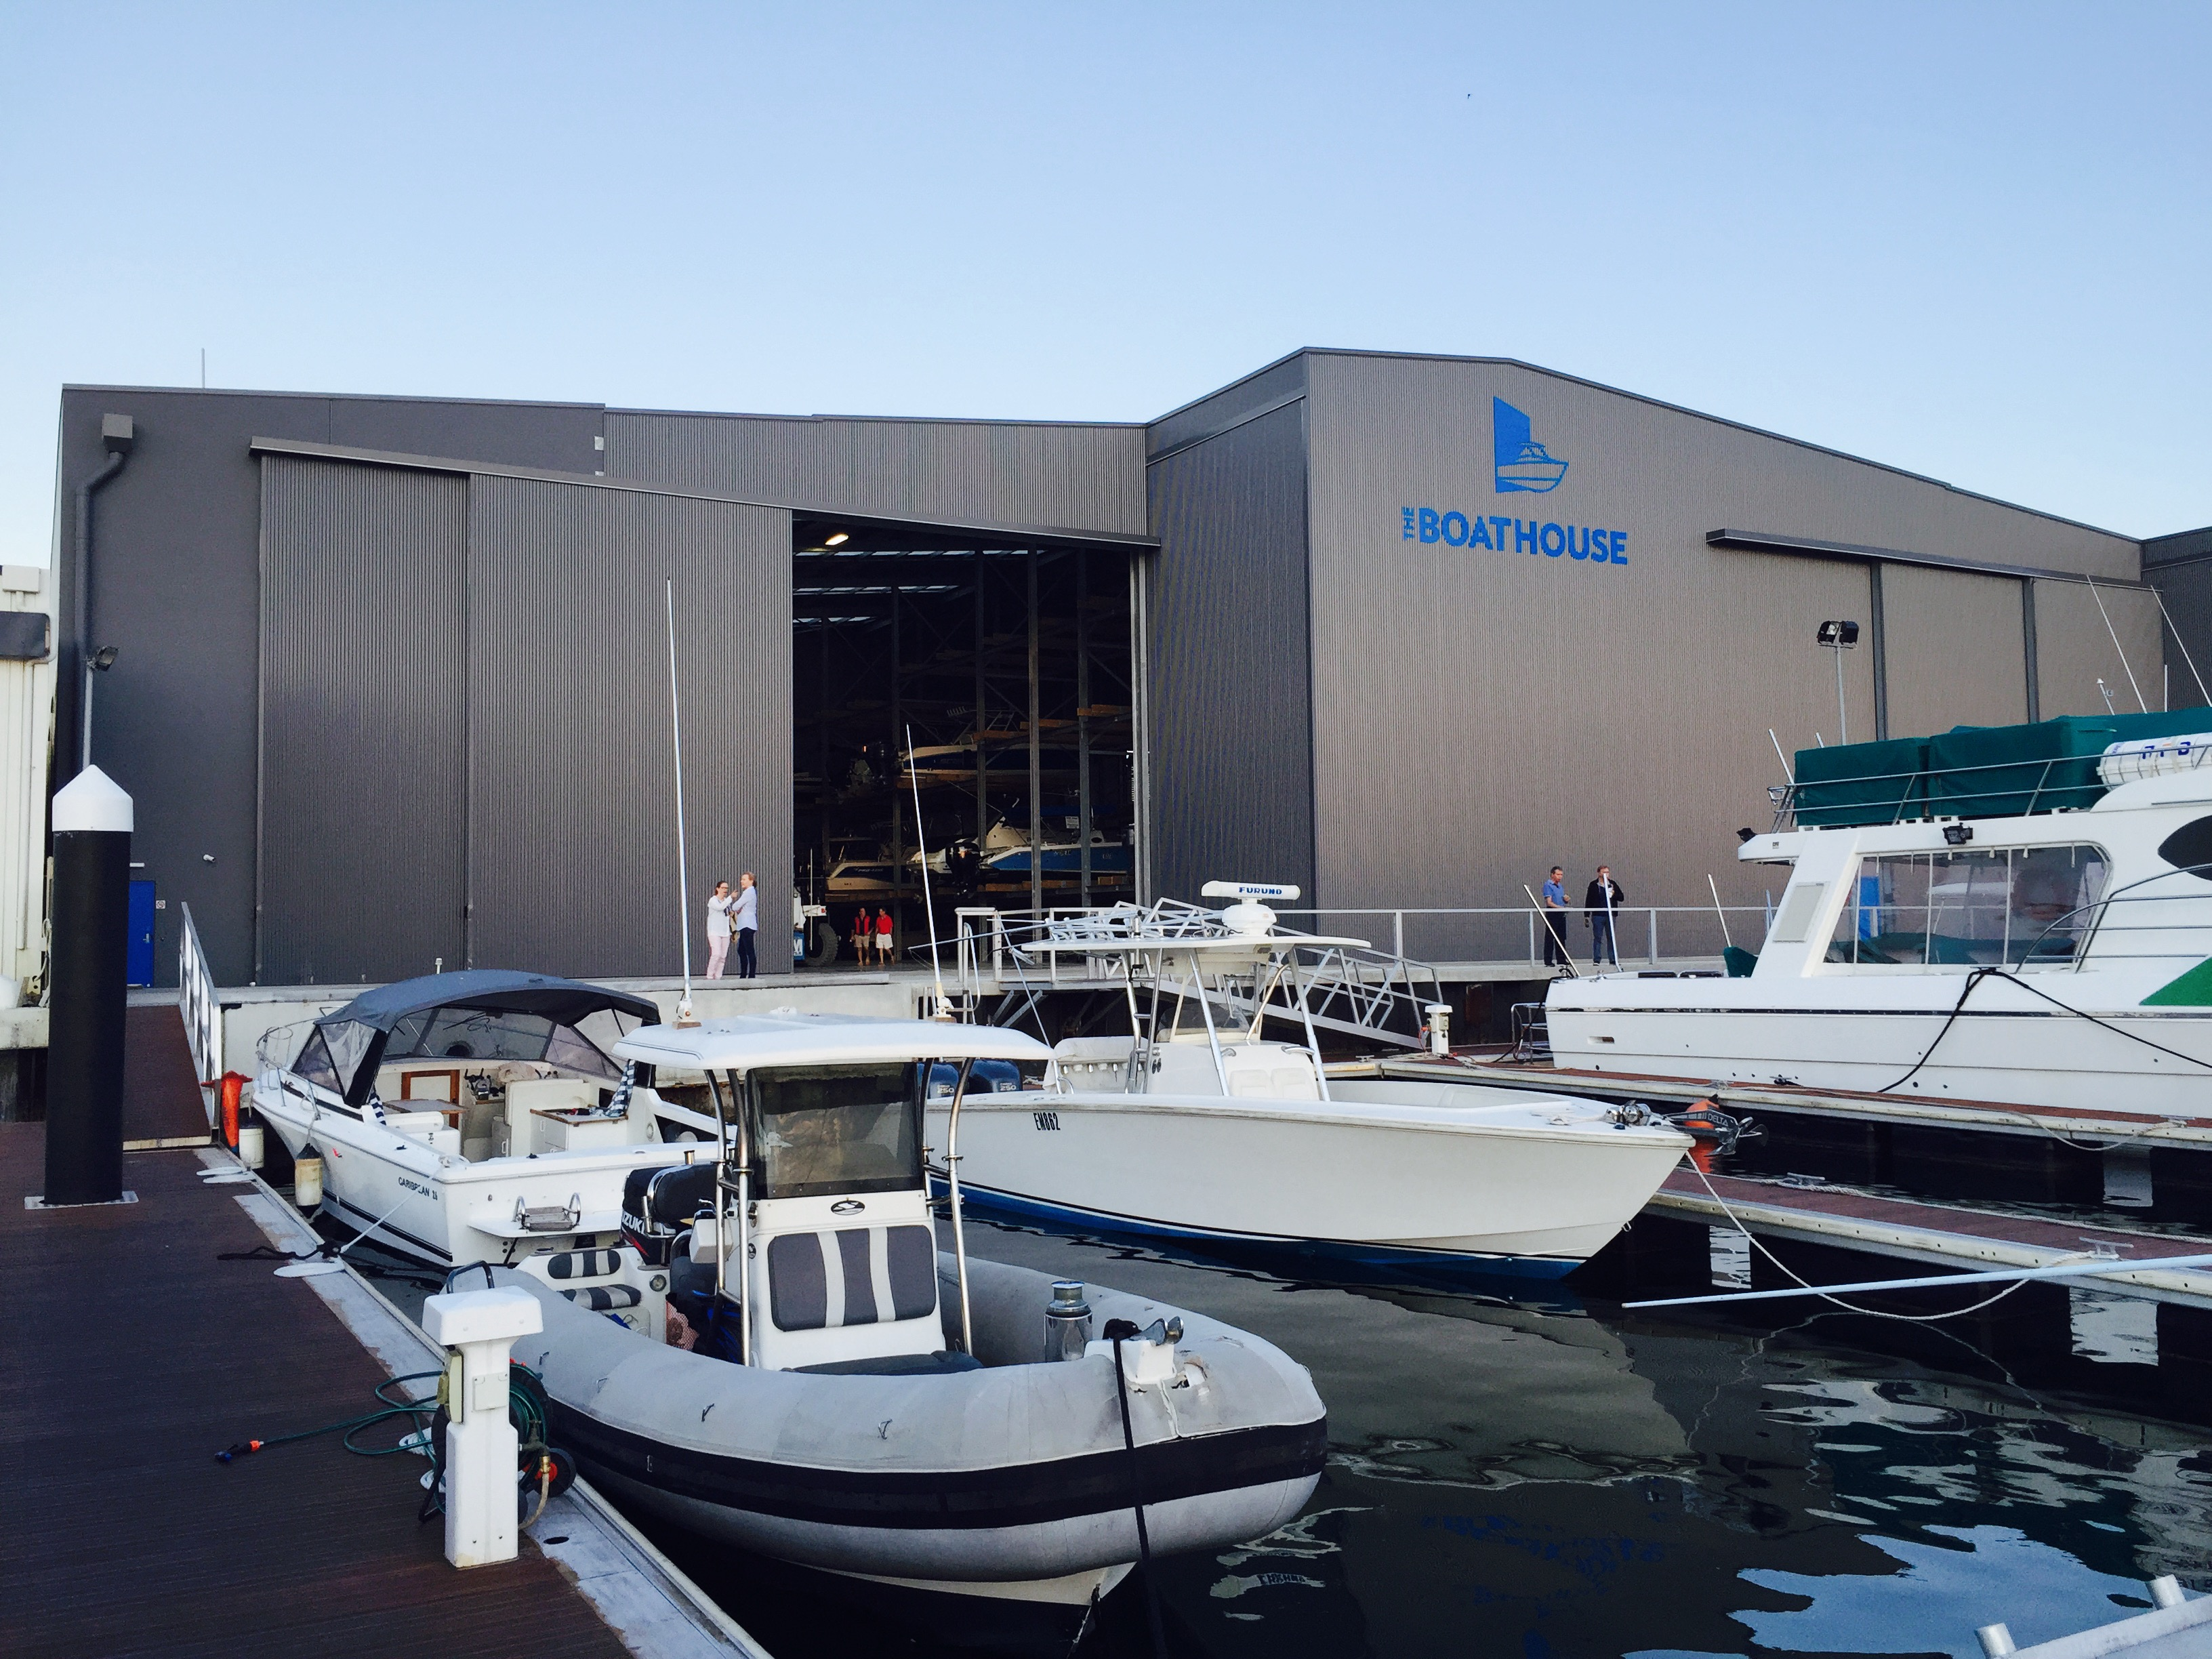 Storage Rental Perth Boathouse Marina Boat Storage Fremantle The Boat House